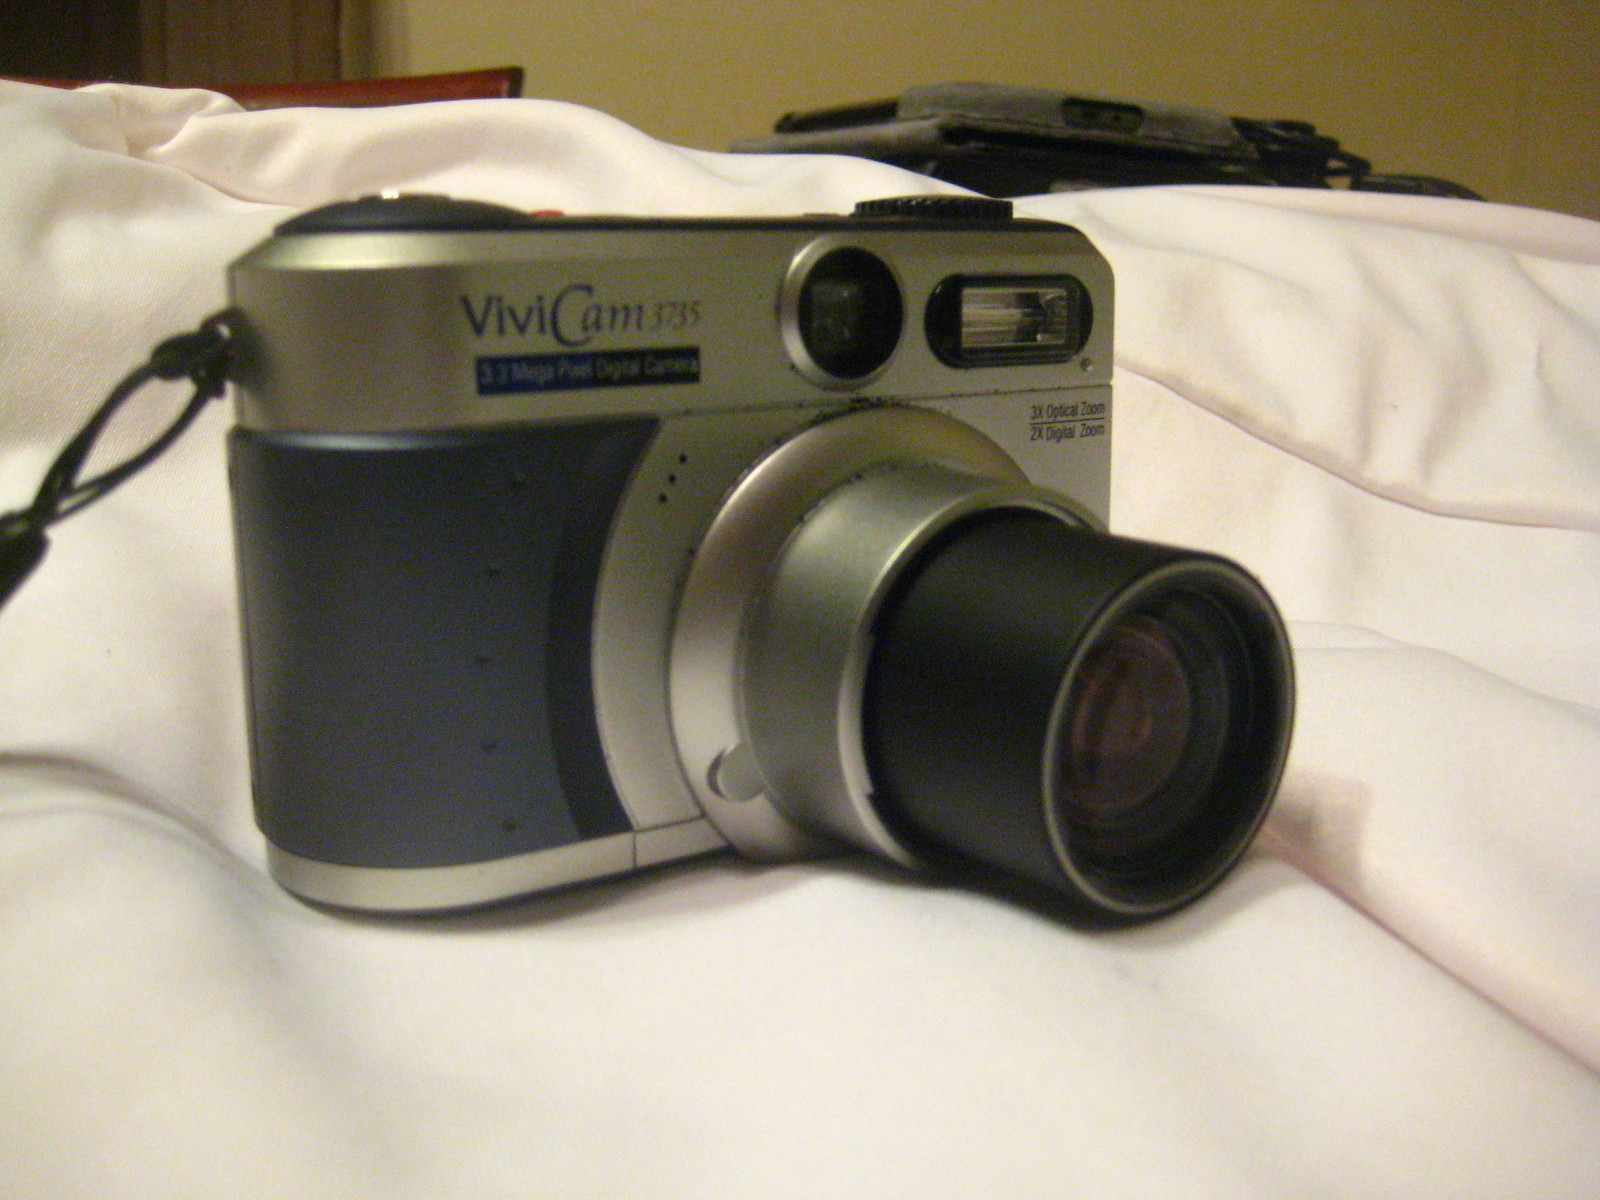 Primary image for Vivitar Vivicam 3735 Digital Camera